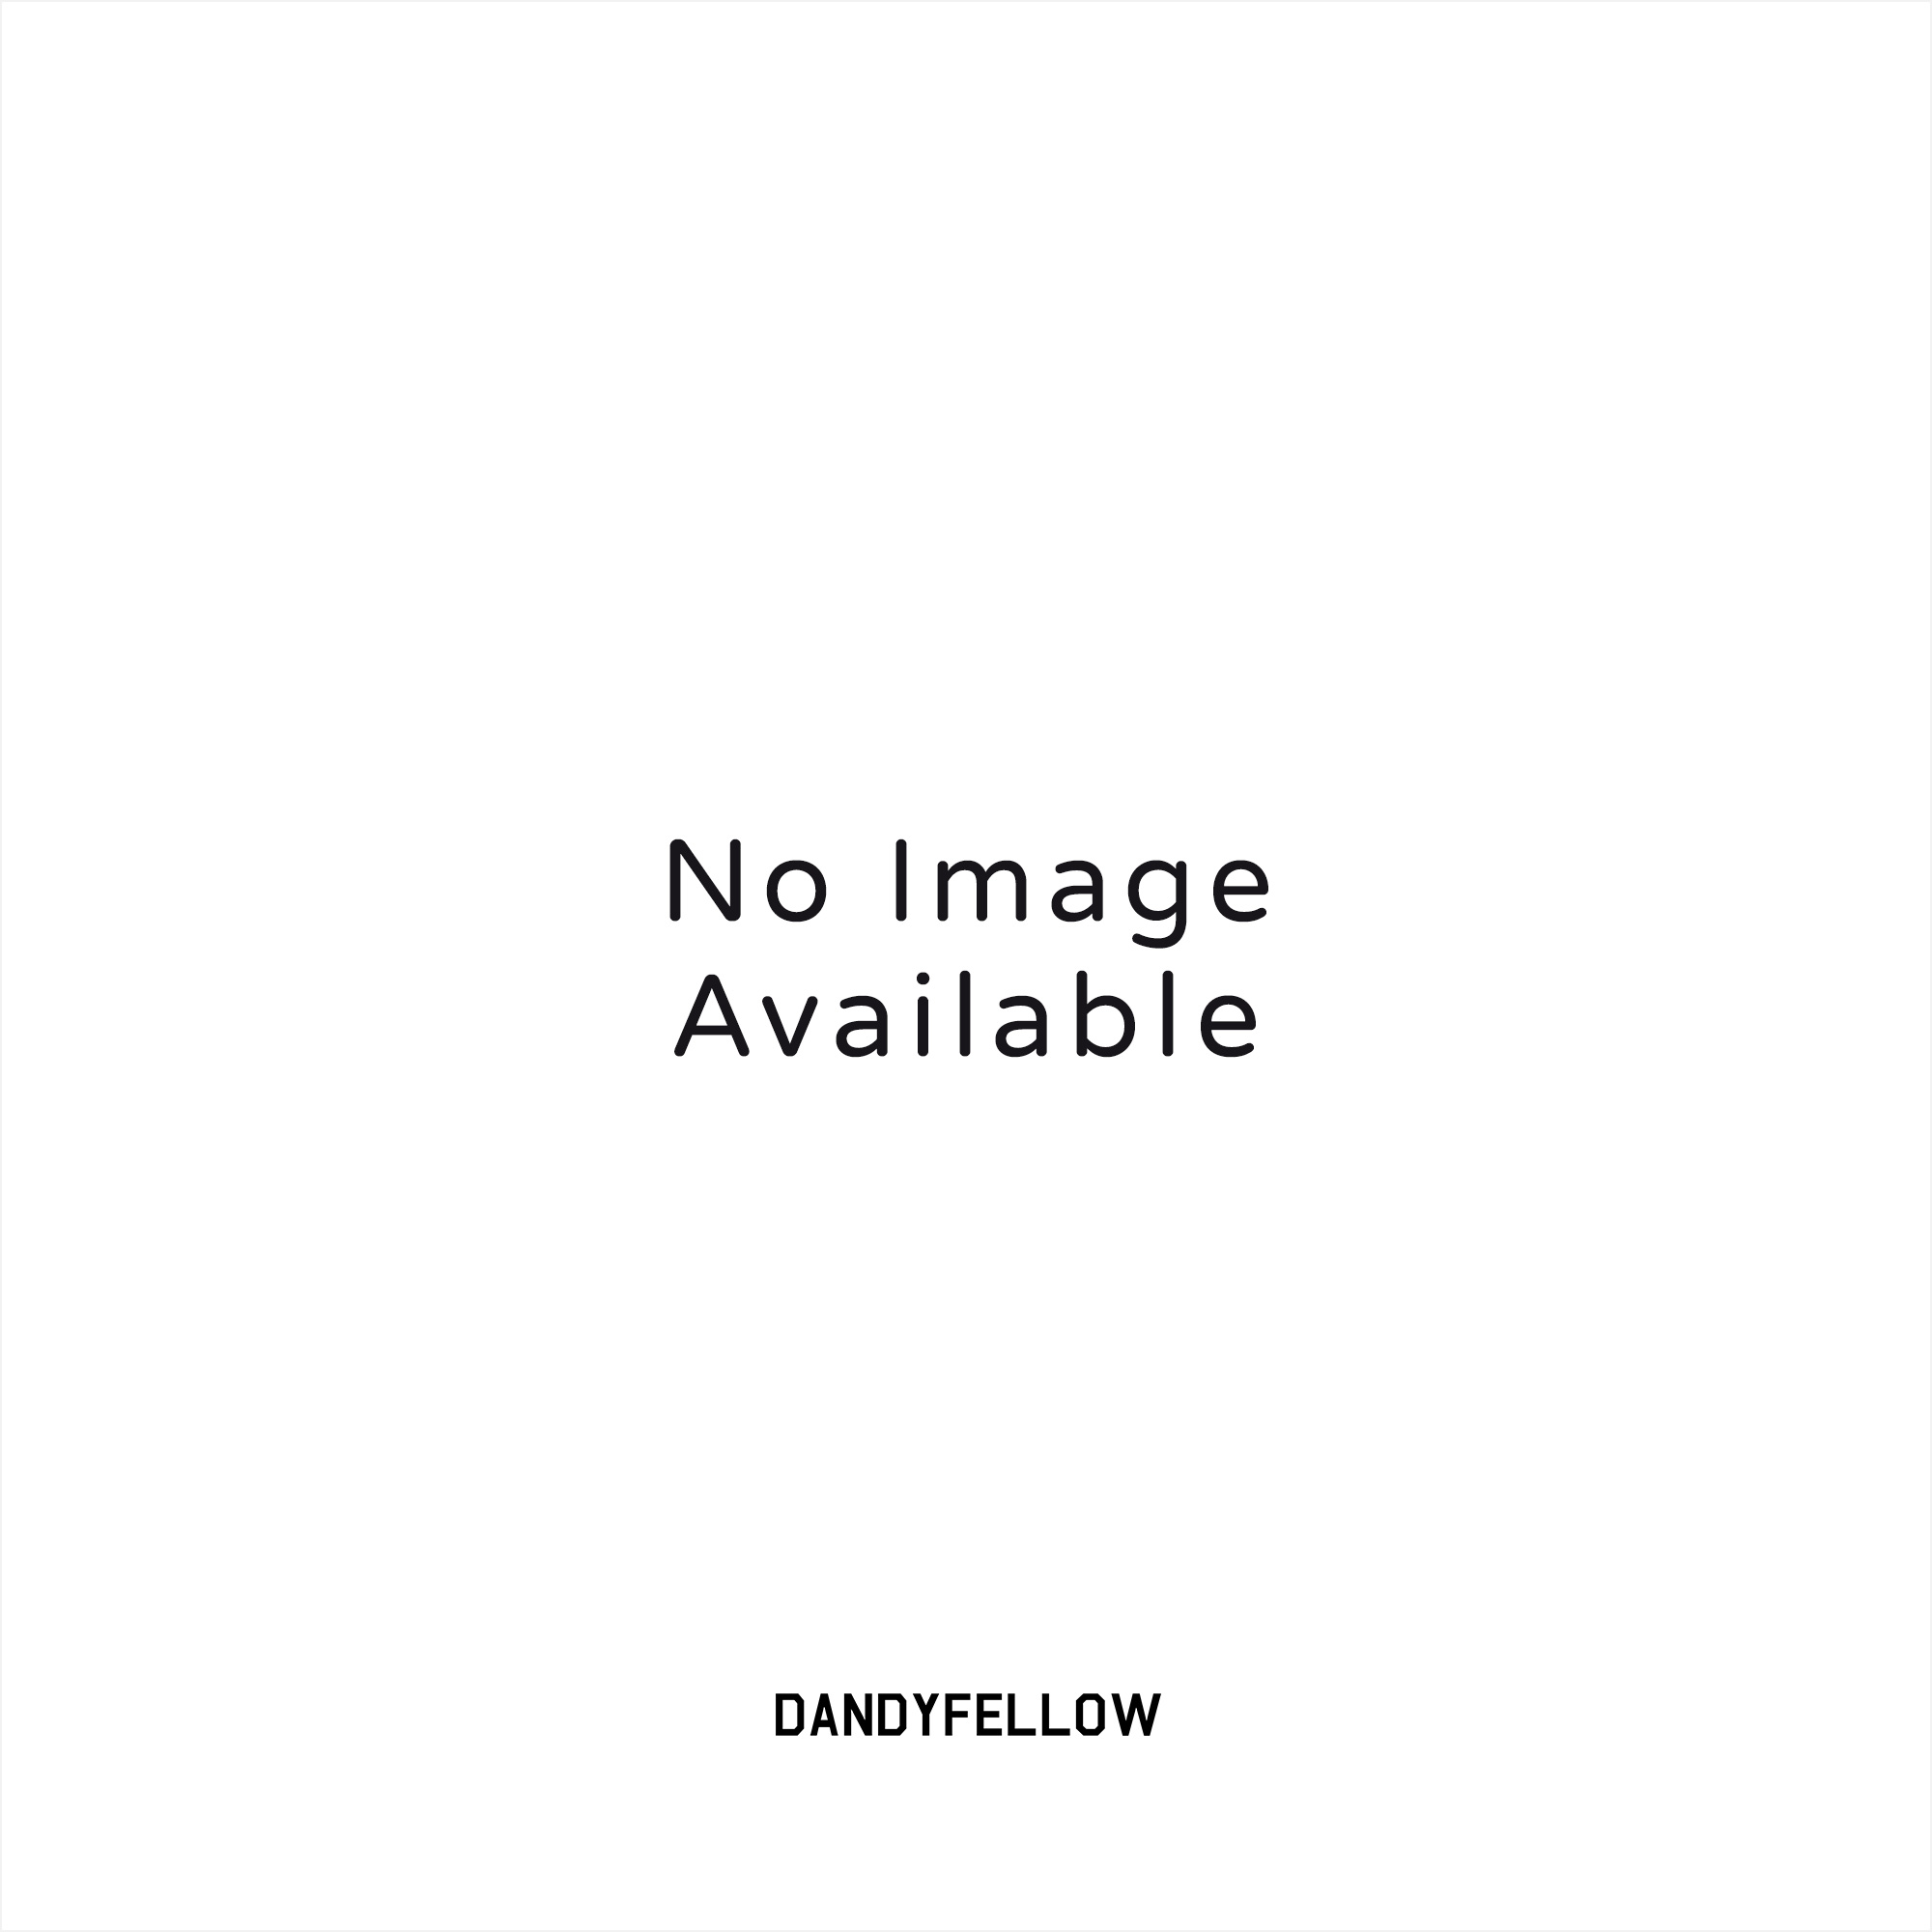 Edwin ED 55 Granite Blue Denim Jeans I02249512